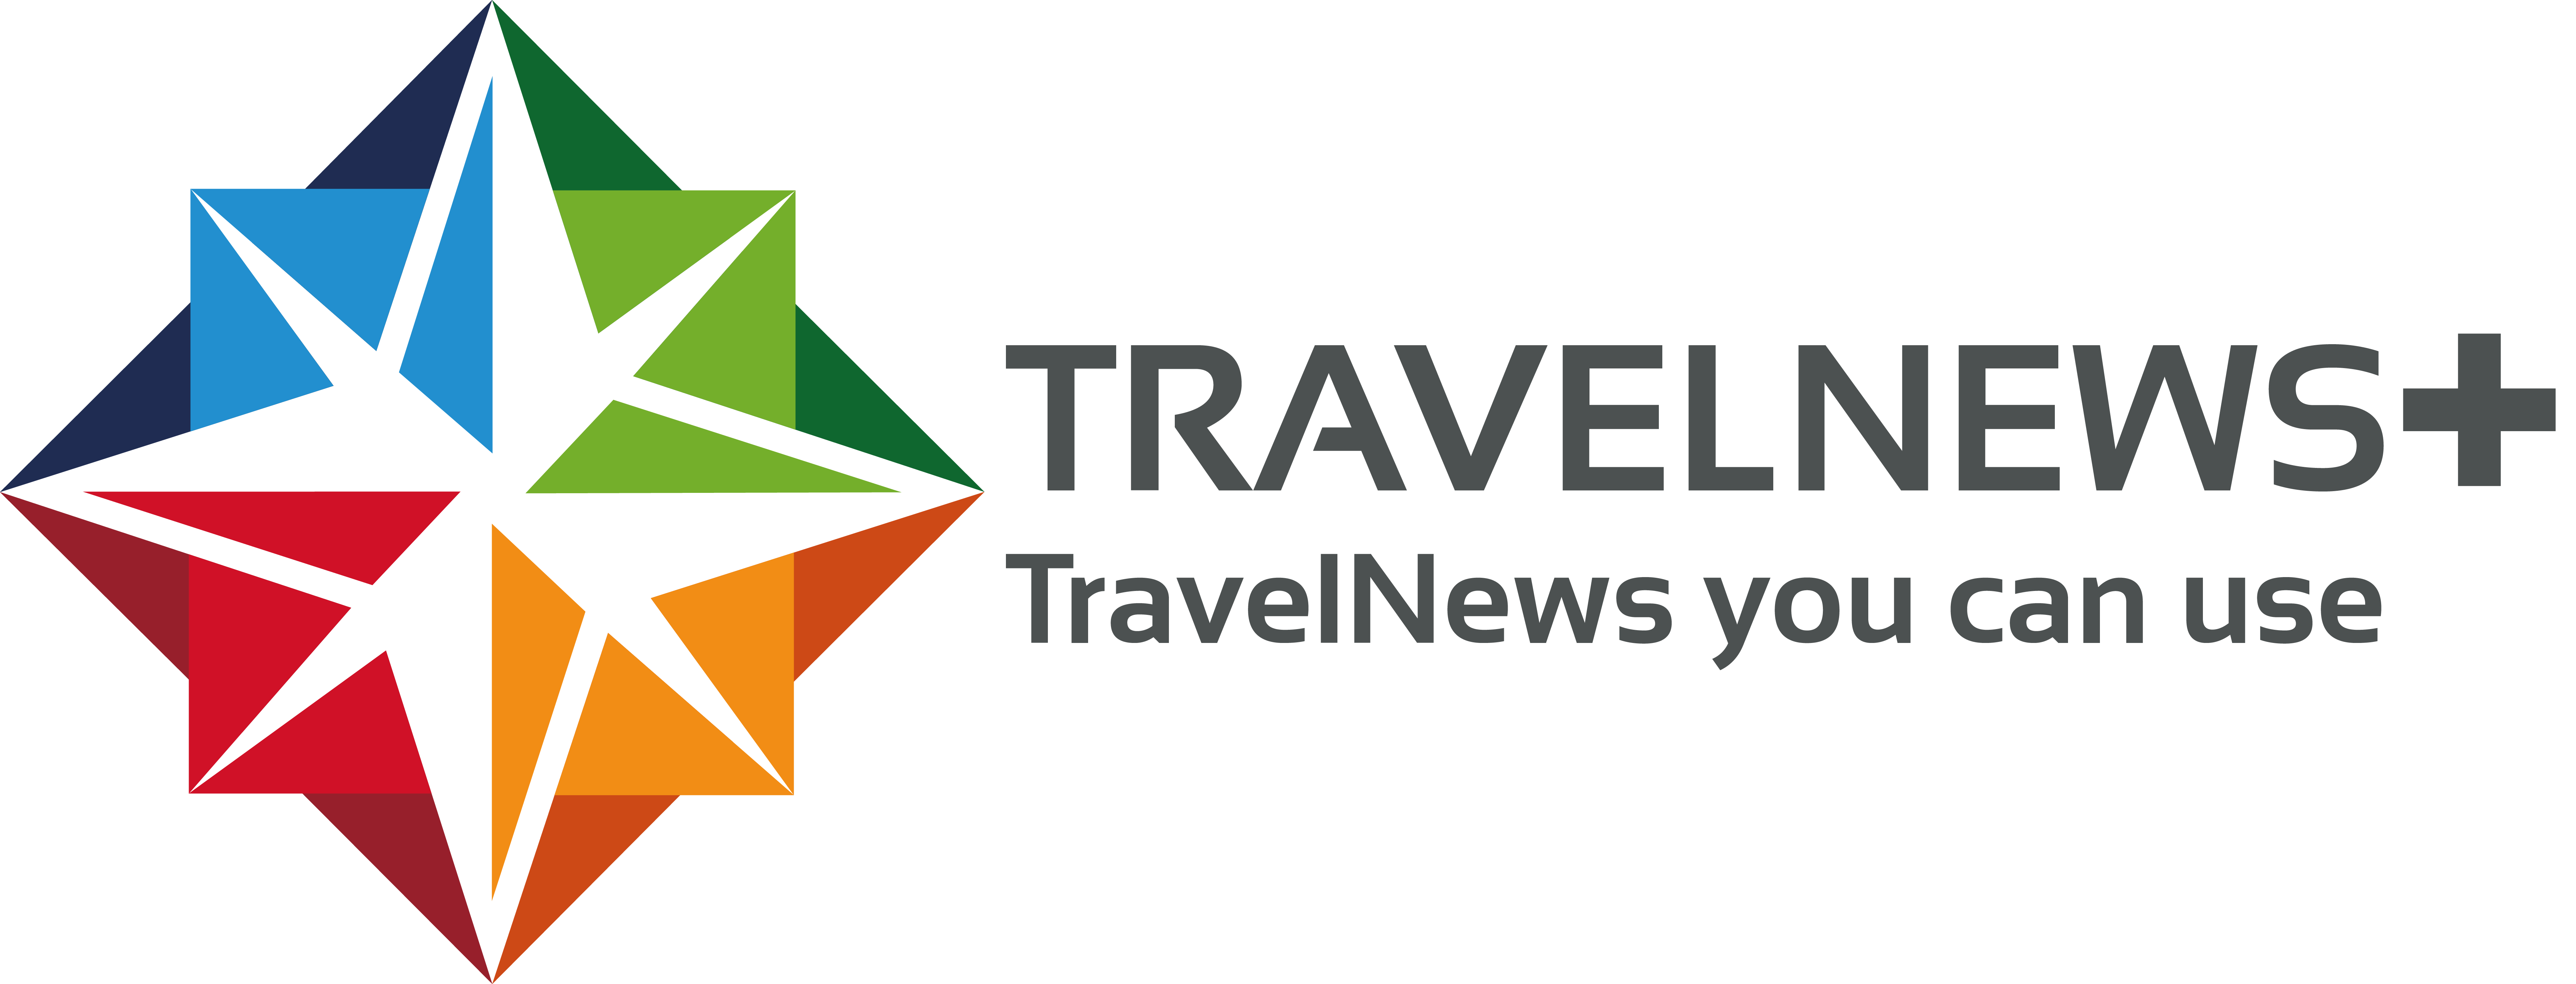 Travelnewsplus